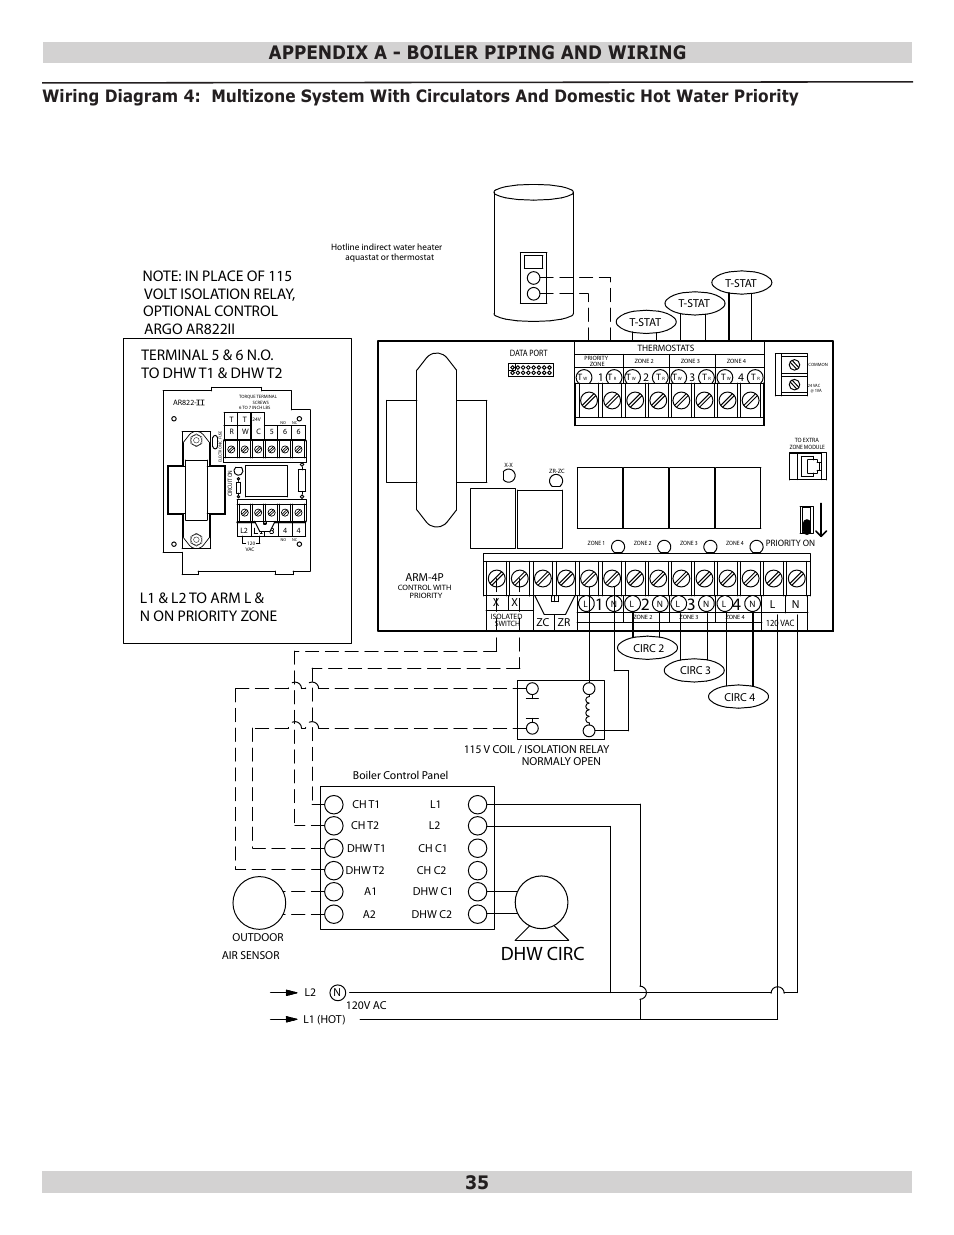 Dunkirk Boiler Control Wiring Great Installation Of Diagram Honeywell Burner Dhw Circ Appendix A Piping And Q95m 200 Rh Manualsdir Com